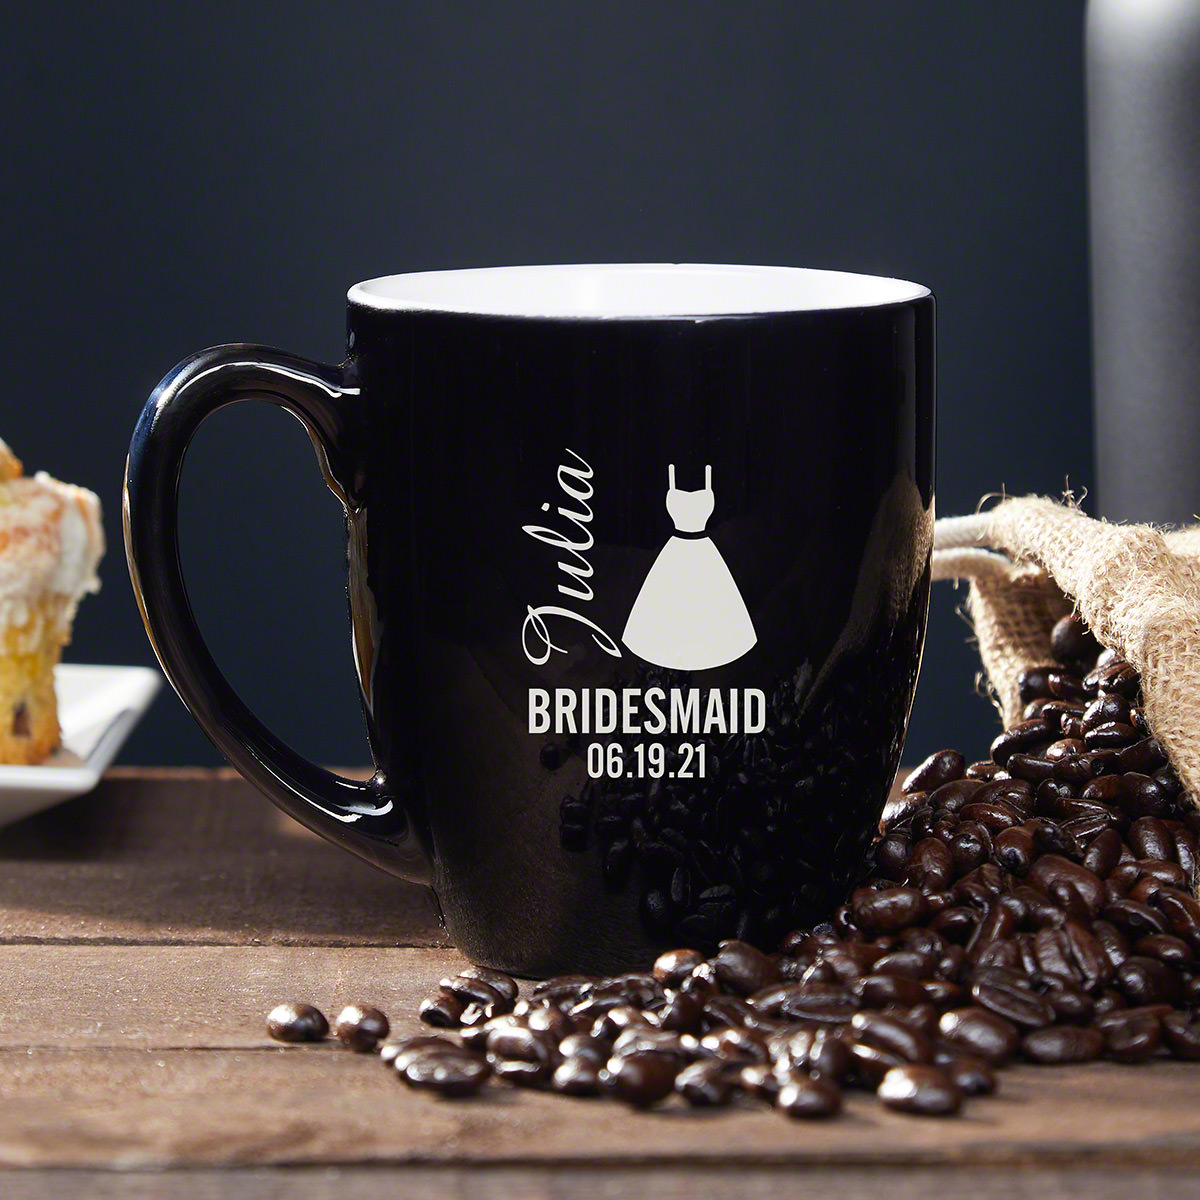 Your bridesmaids are your besties and you want to give them something special to thank them for their years of friendship and for being by your side on your big day. Our personalized coffee mug is the perfect bridesmaid gift! Your girls drink tea, coffee, #mug